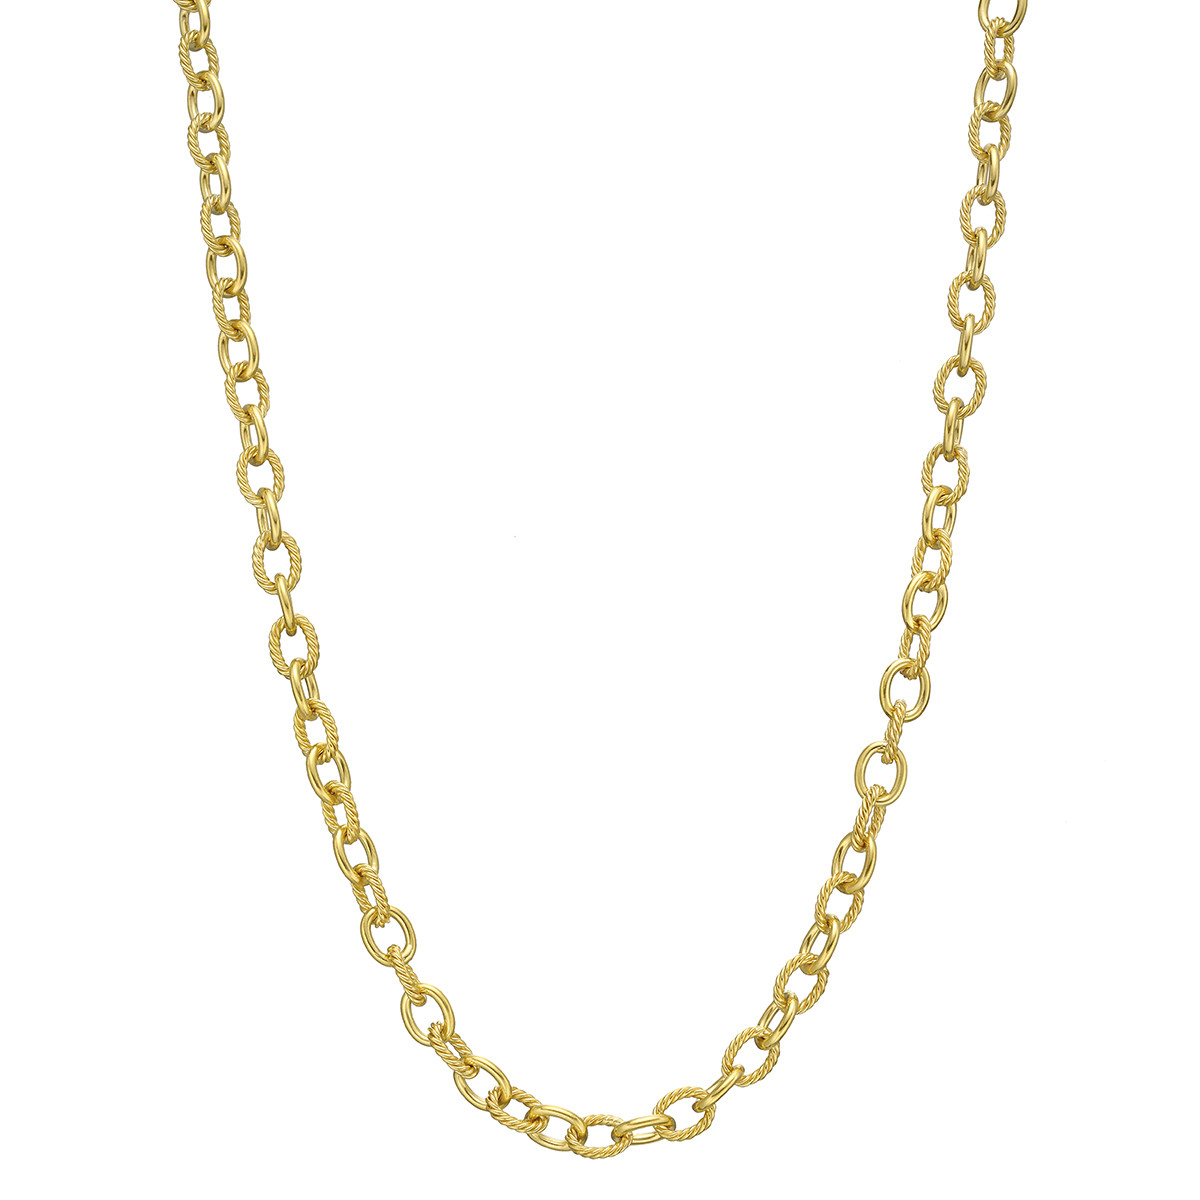 18k Yellow Gold Oval Link Chain Necklace